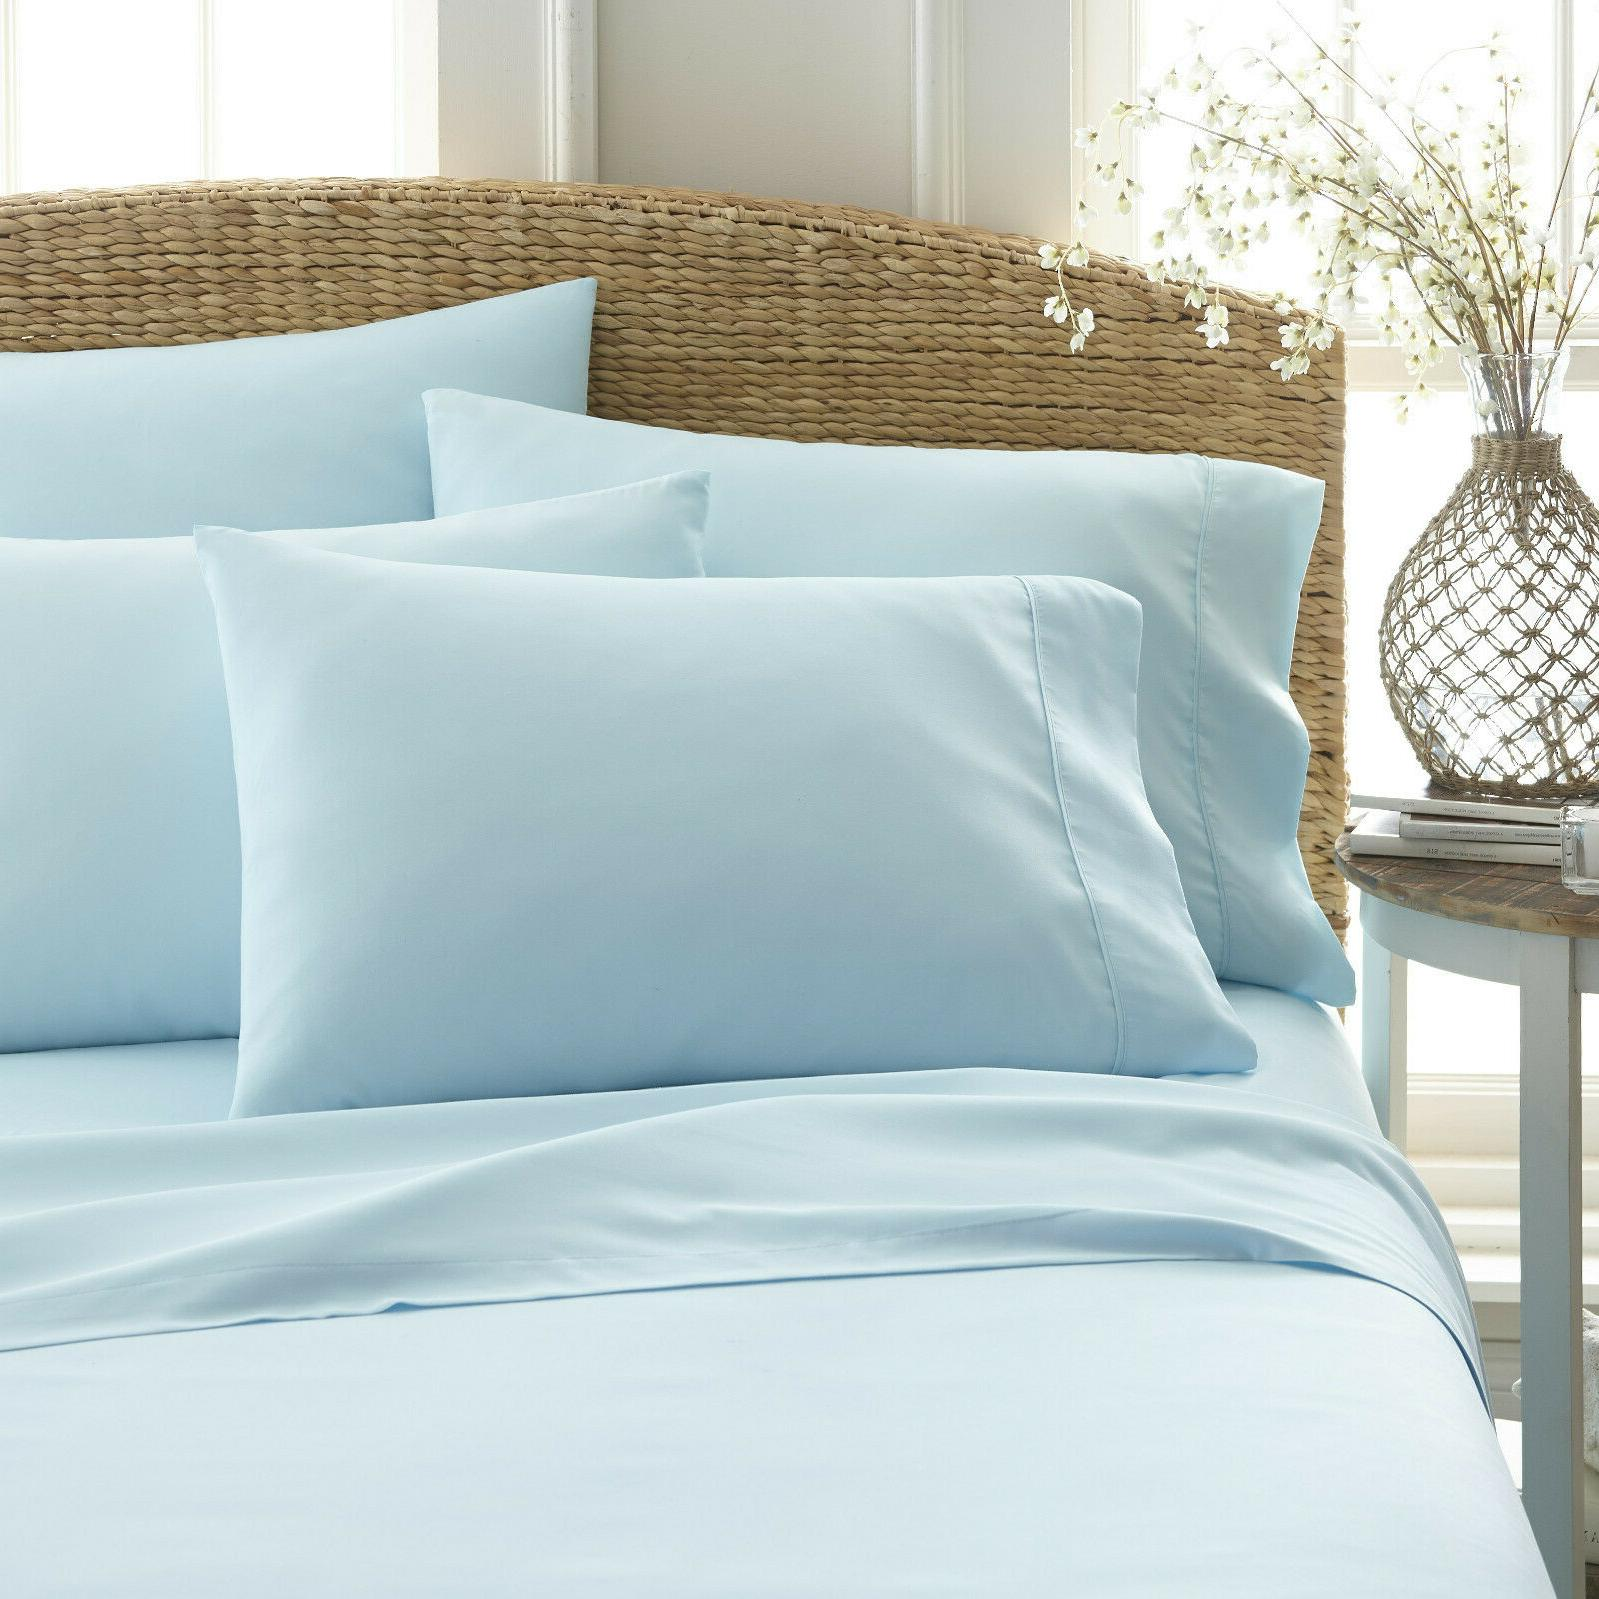 KING SIZE DEEP PIECE SUPER EXTRA BED SET 4 PILLOW CASES